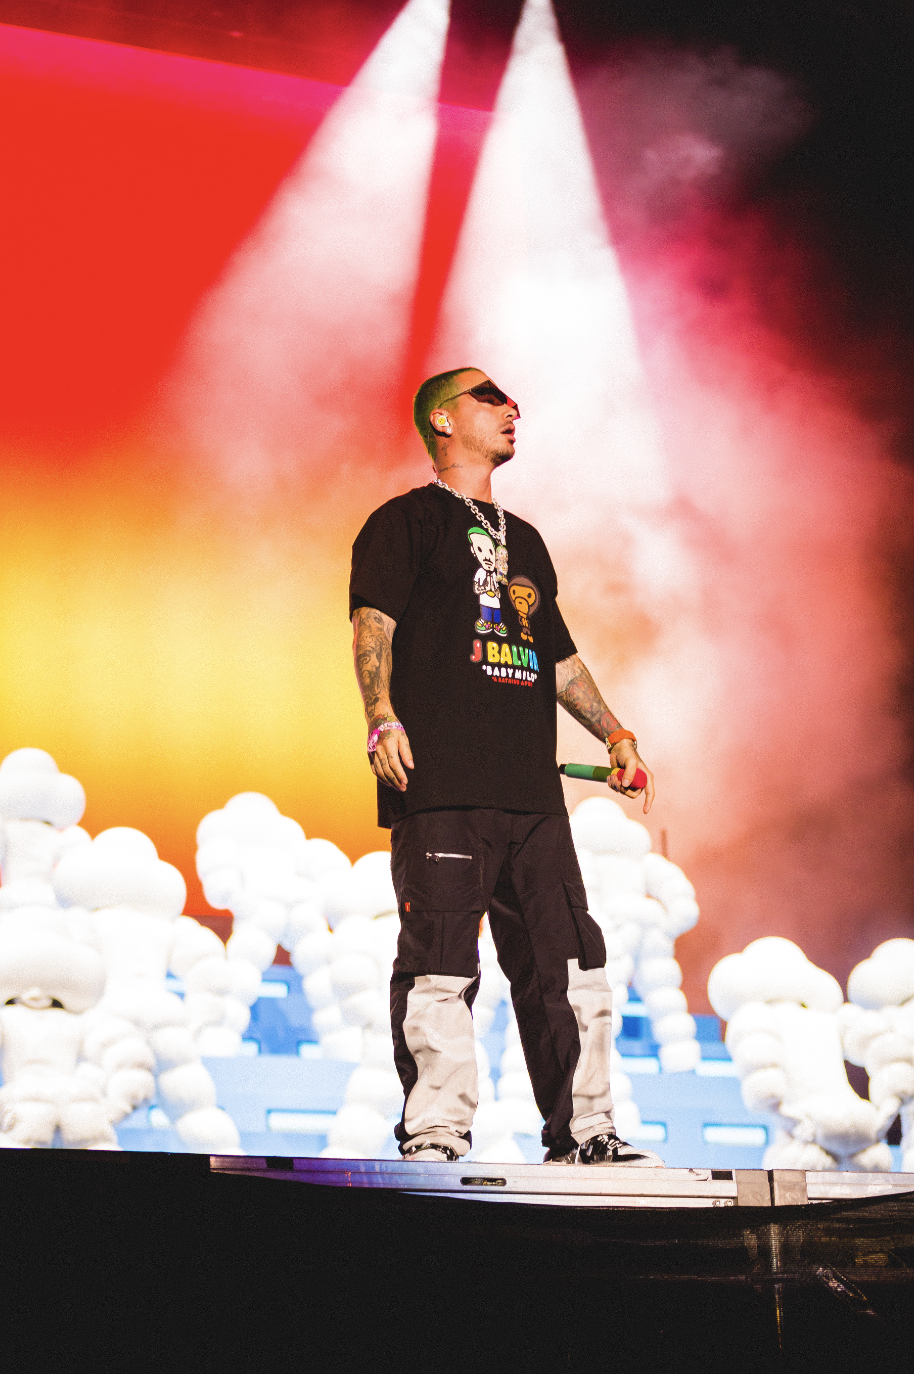 J+Balvin+made+history+as+the+first+latin+music+artist+to+perform+as+a+Lollapalooza+headliner+Aug.+3.